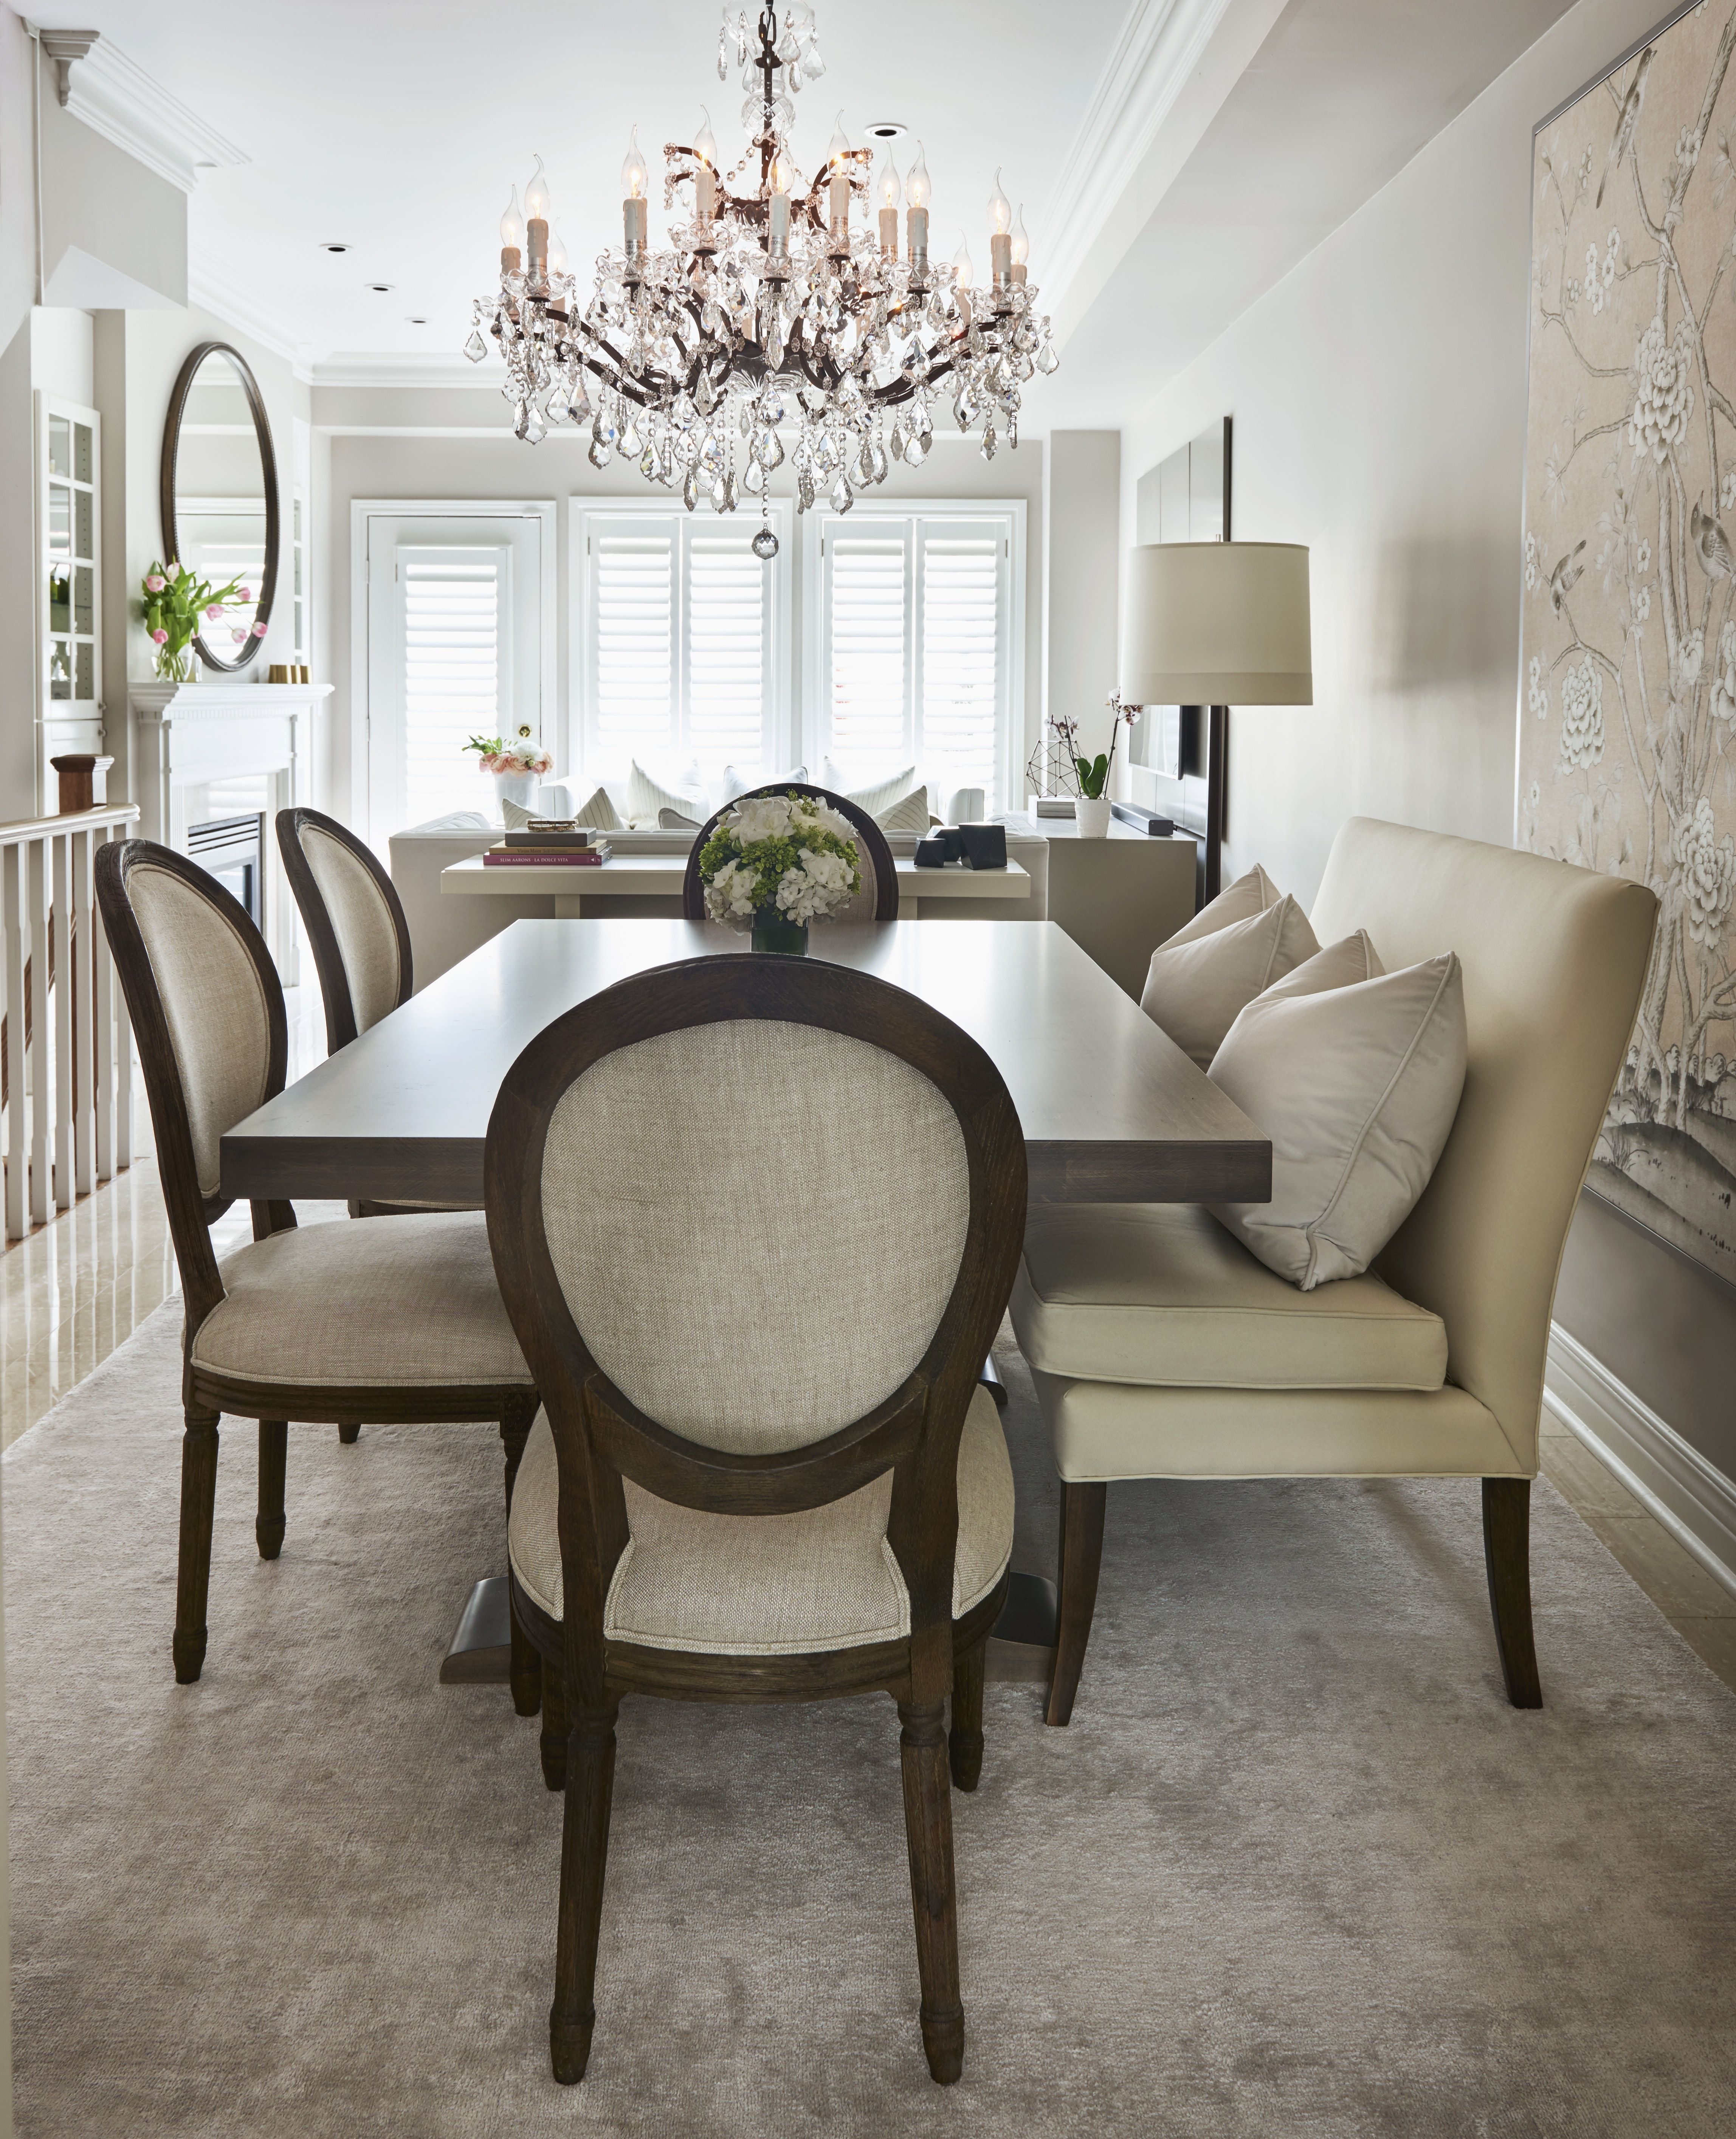 19 Creative Contemporary Dining Furniture Ideas Living Dining Room Dining Room Decor Dining Room Design Decor dining room chairs